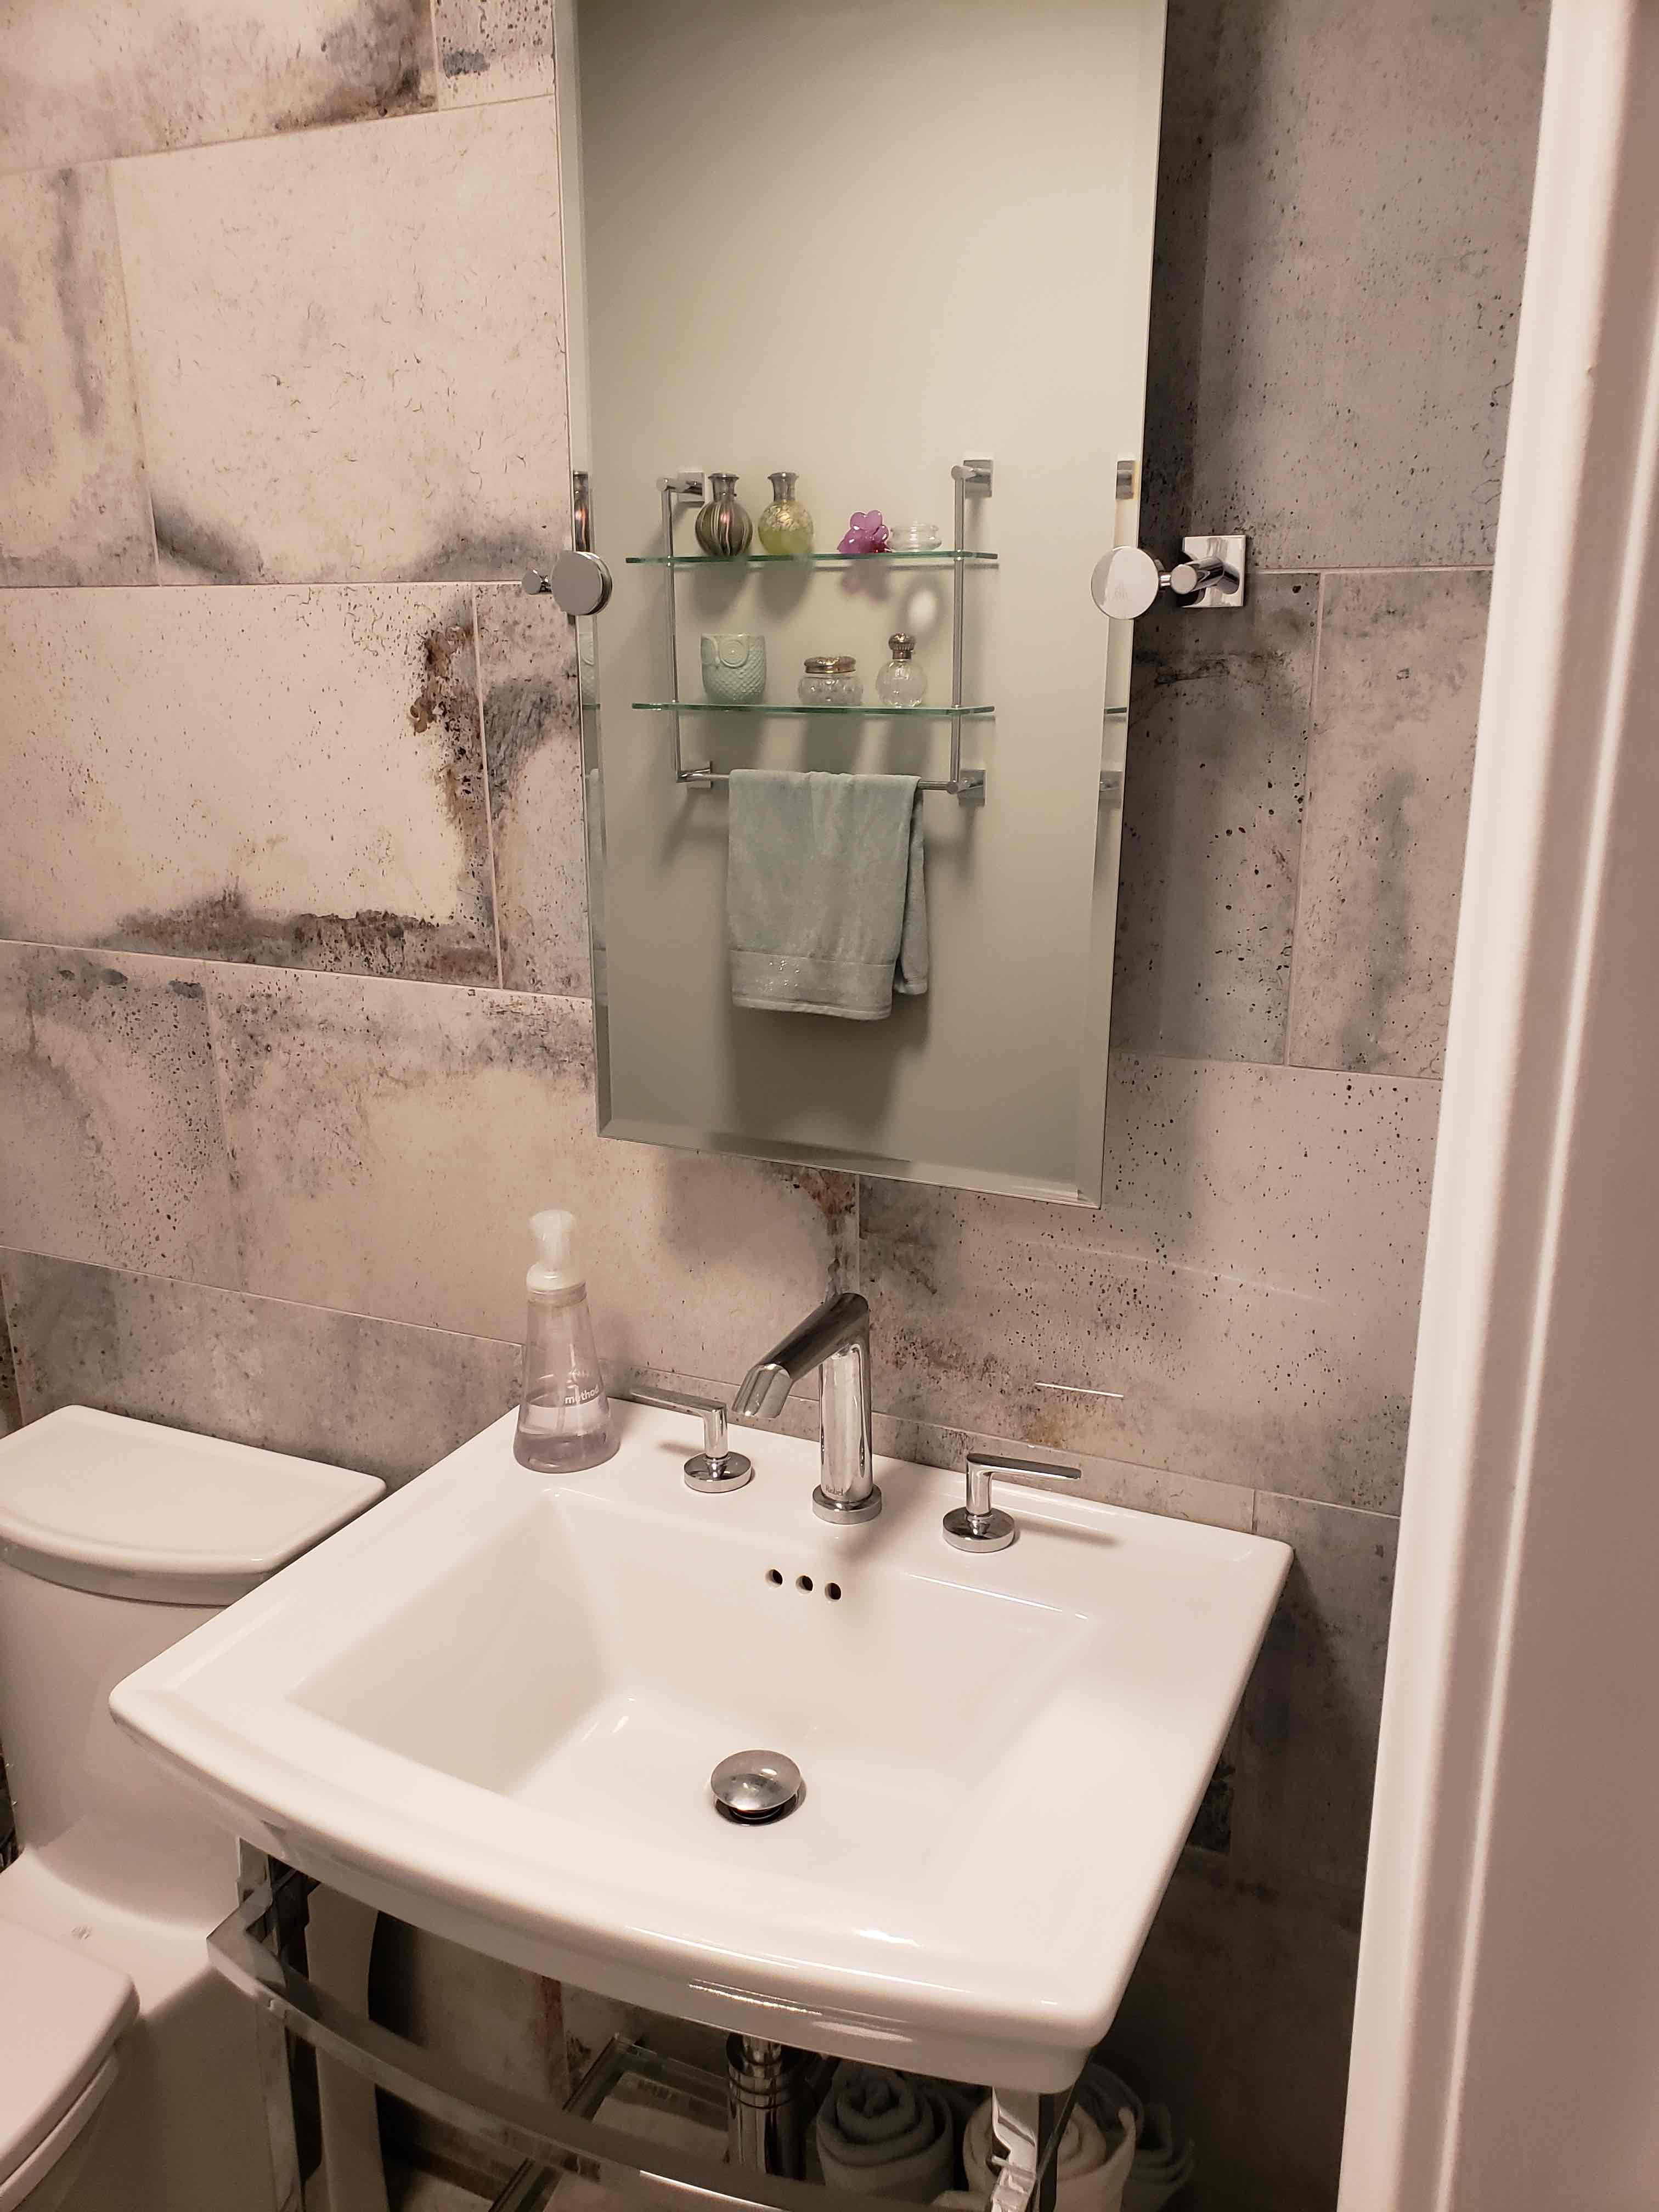 Of Serviceable E A Consideration For Apartment Dwellers Most People Fresh And Modern Bathroom Can Change Your Entire Outlook On Life